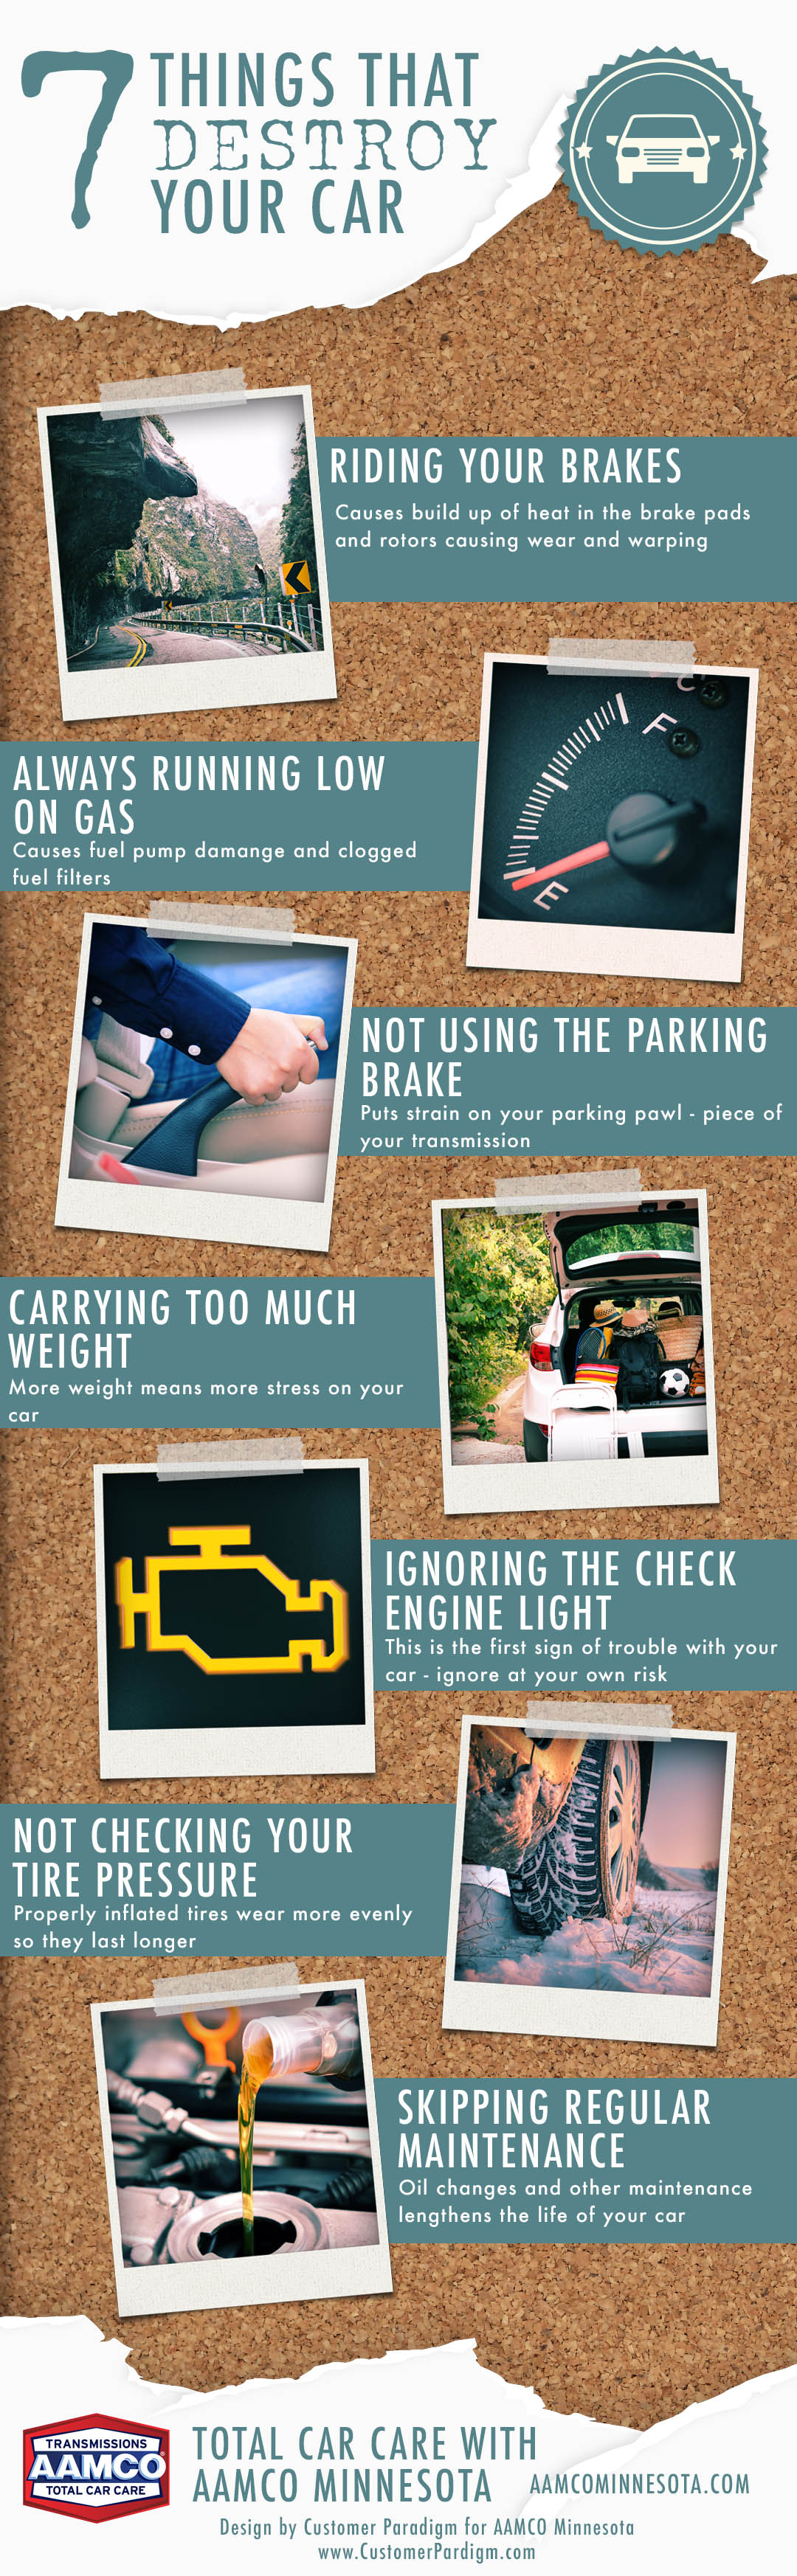 7 things that destroy your car infographic